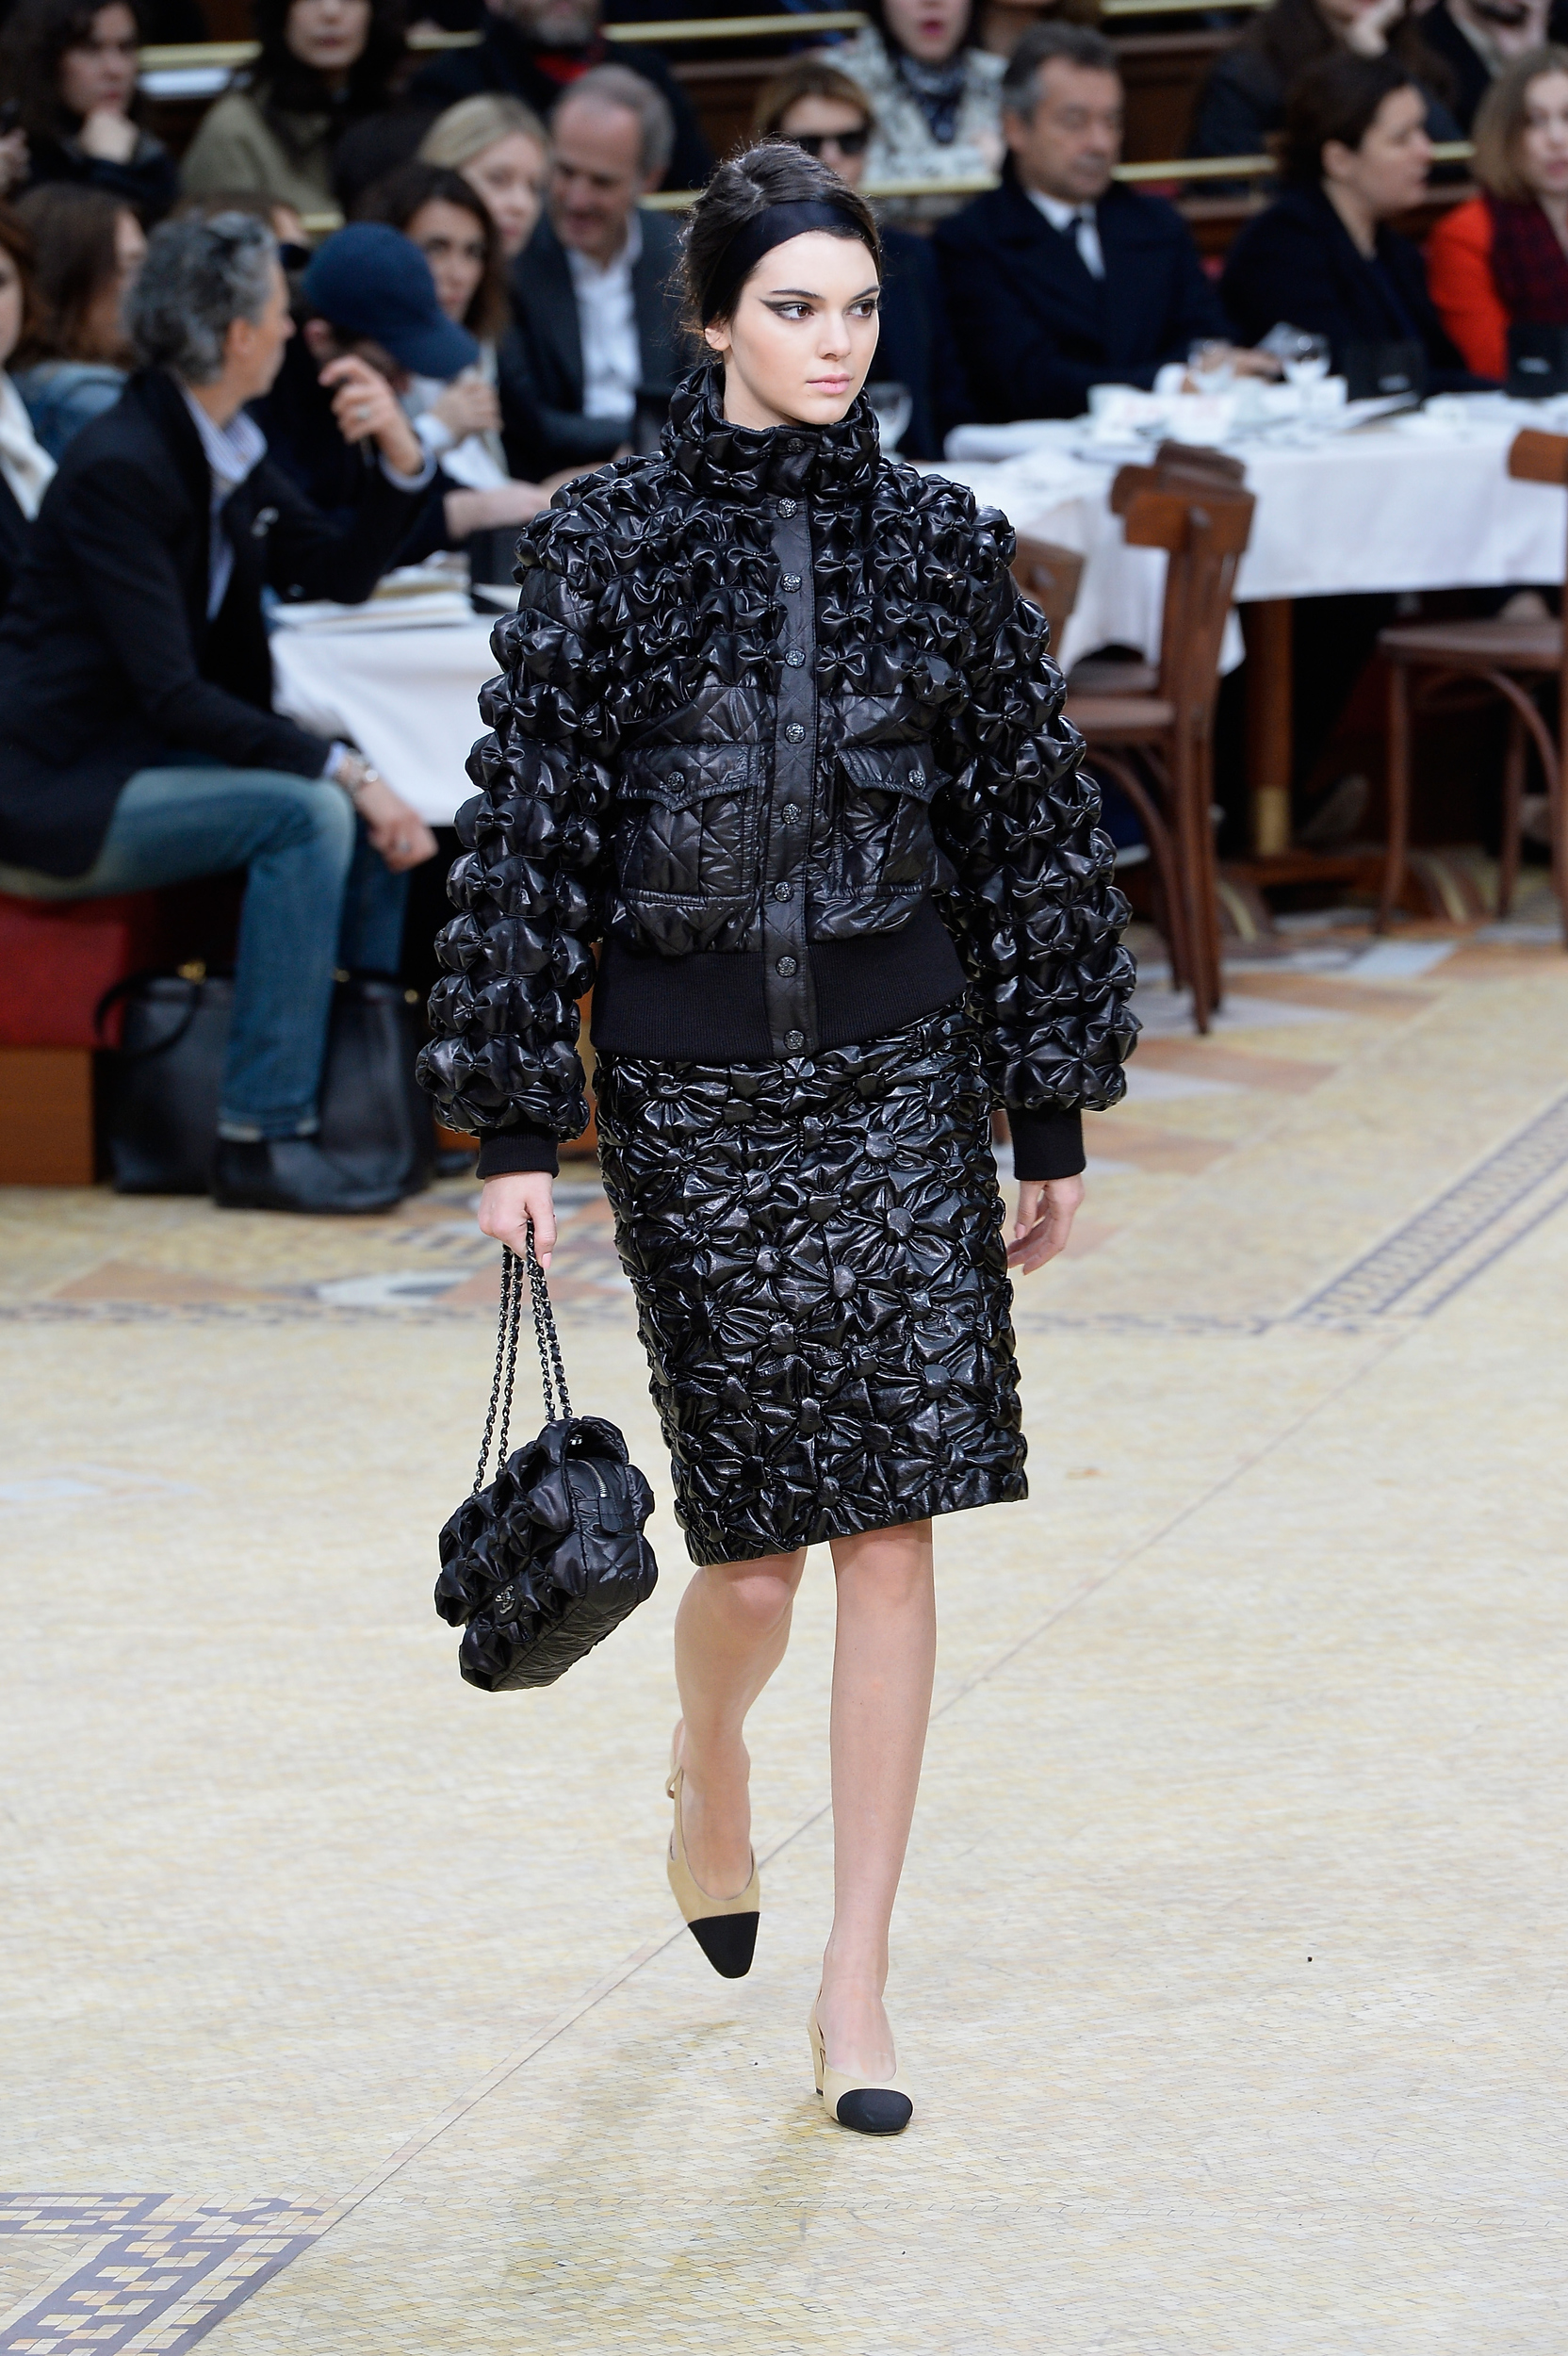 Bag at You - Chanel Runway Paris Fashion Week Au Wi 15 16